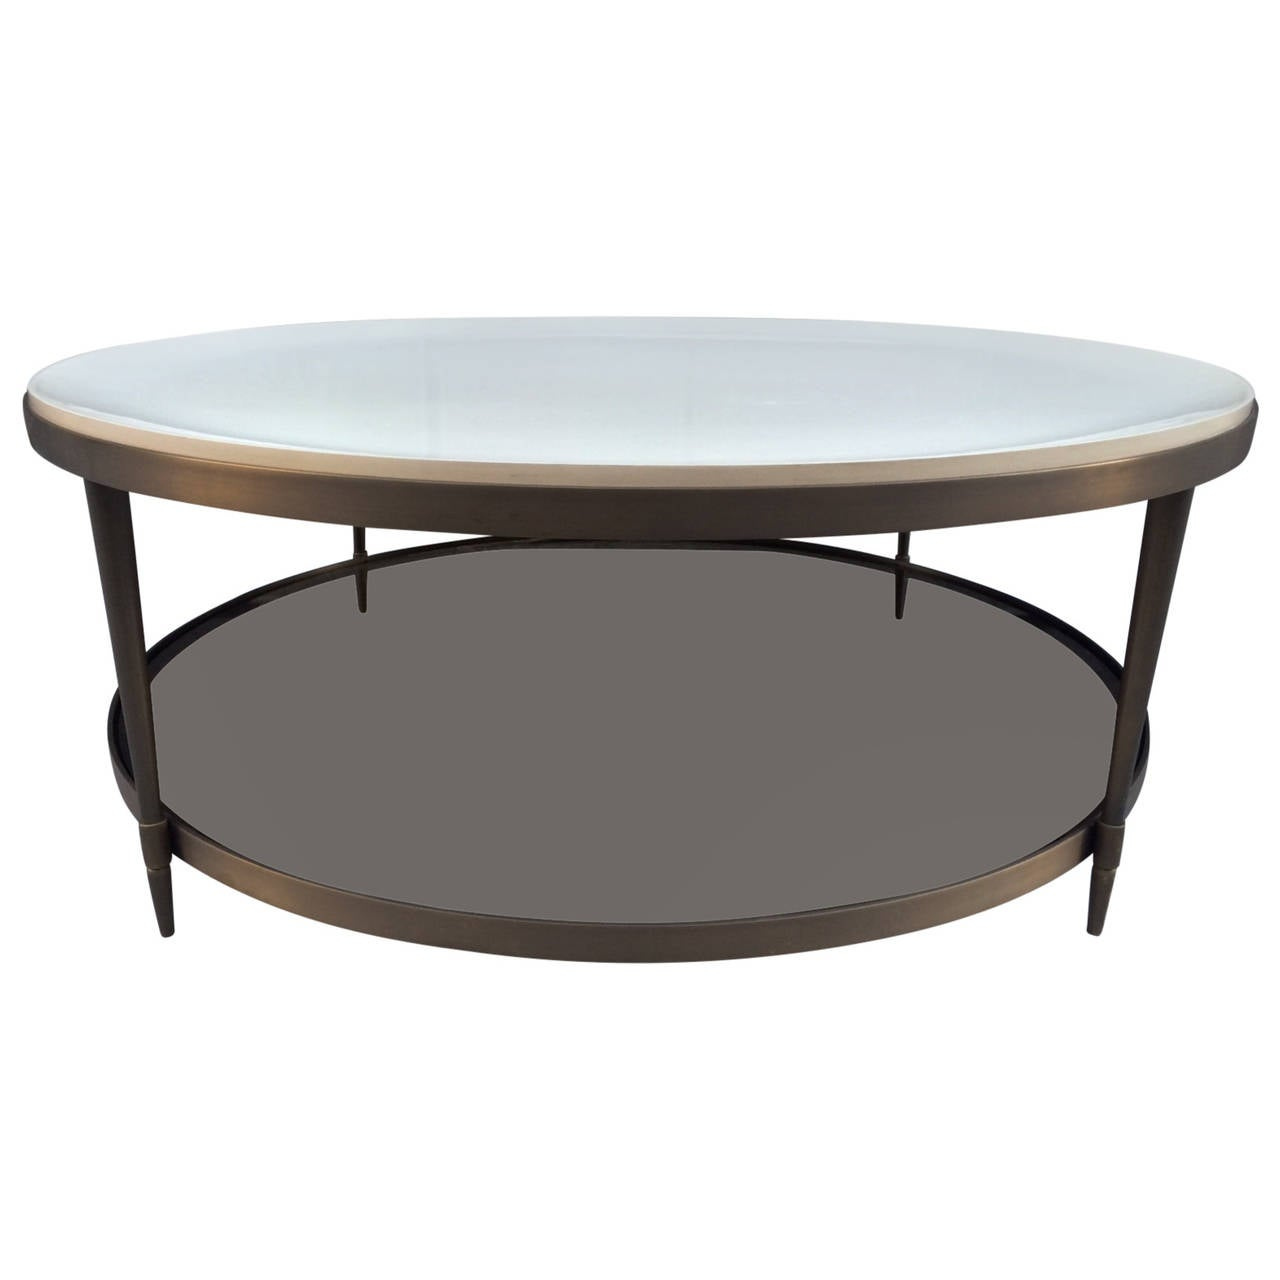 Brass coffee table by barbara barry for baker for sale at 1stdibs Barbara barry coffee table